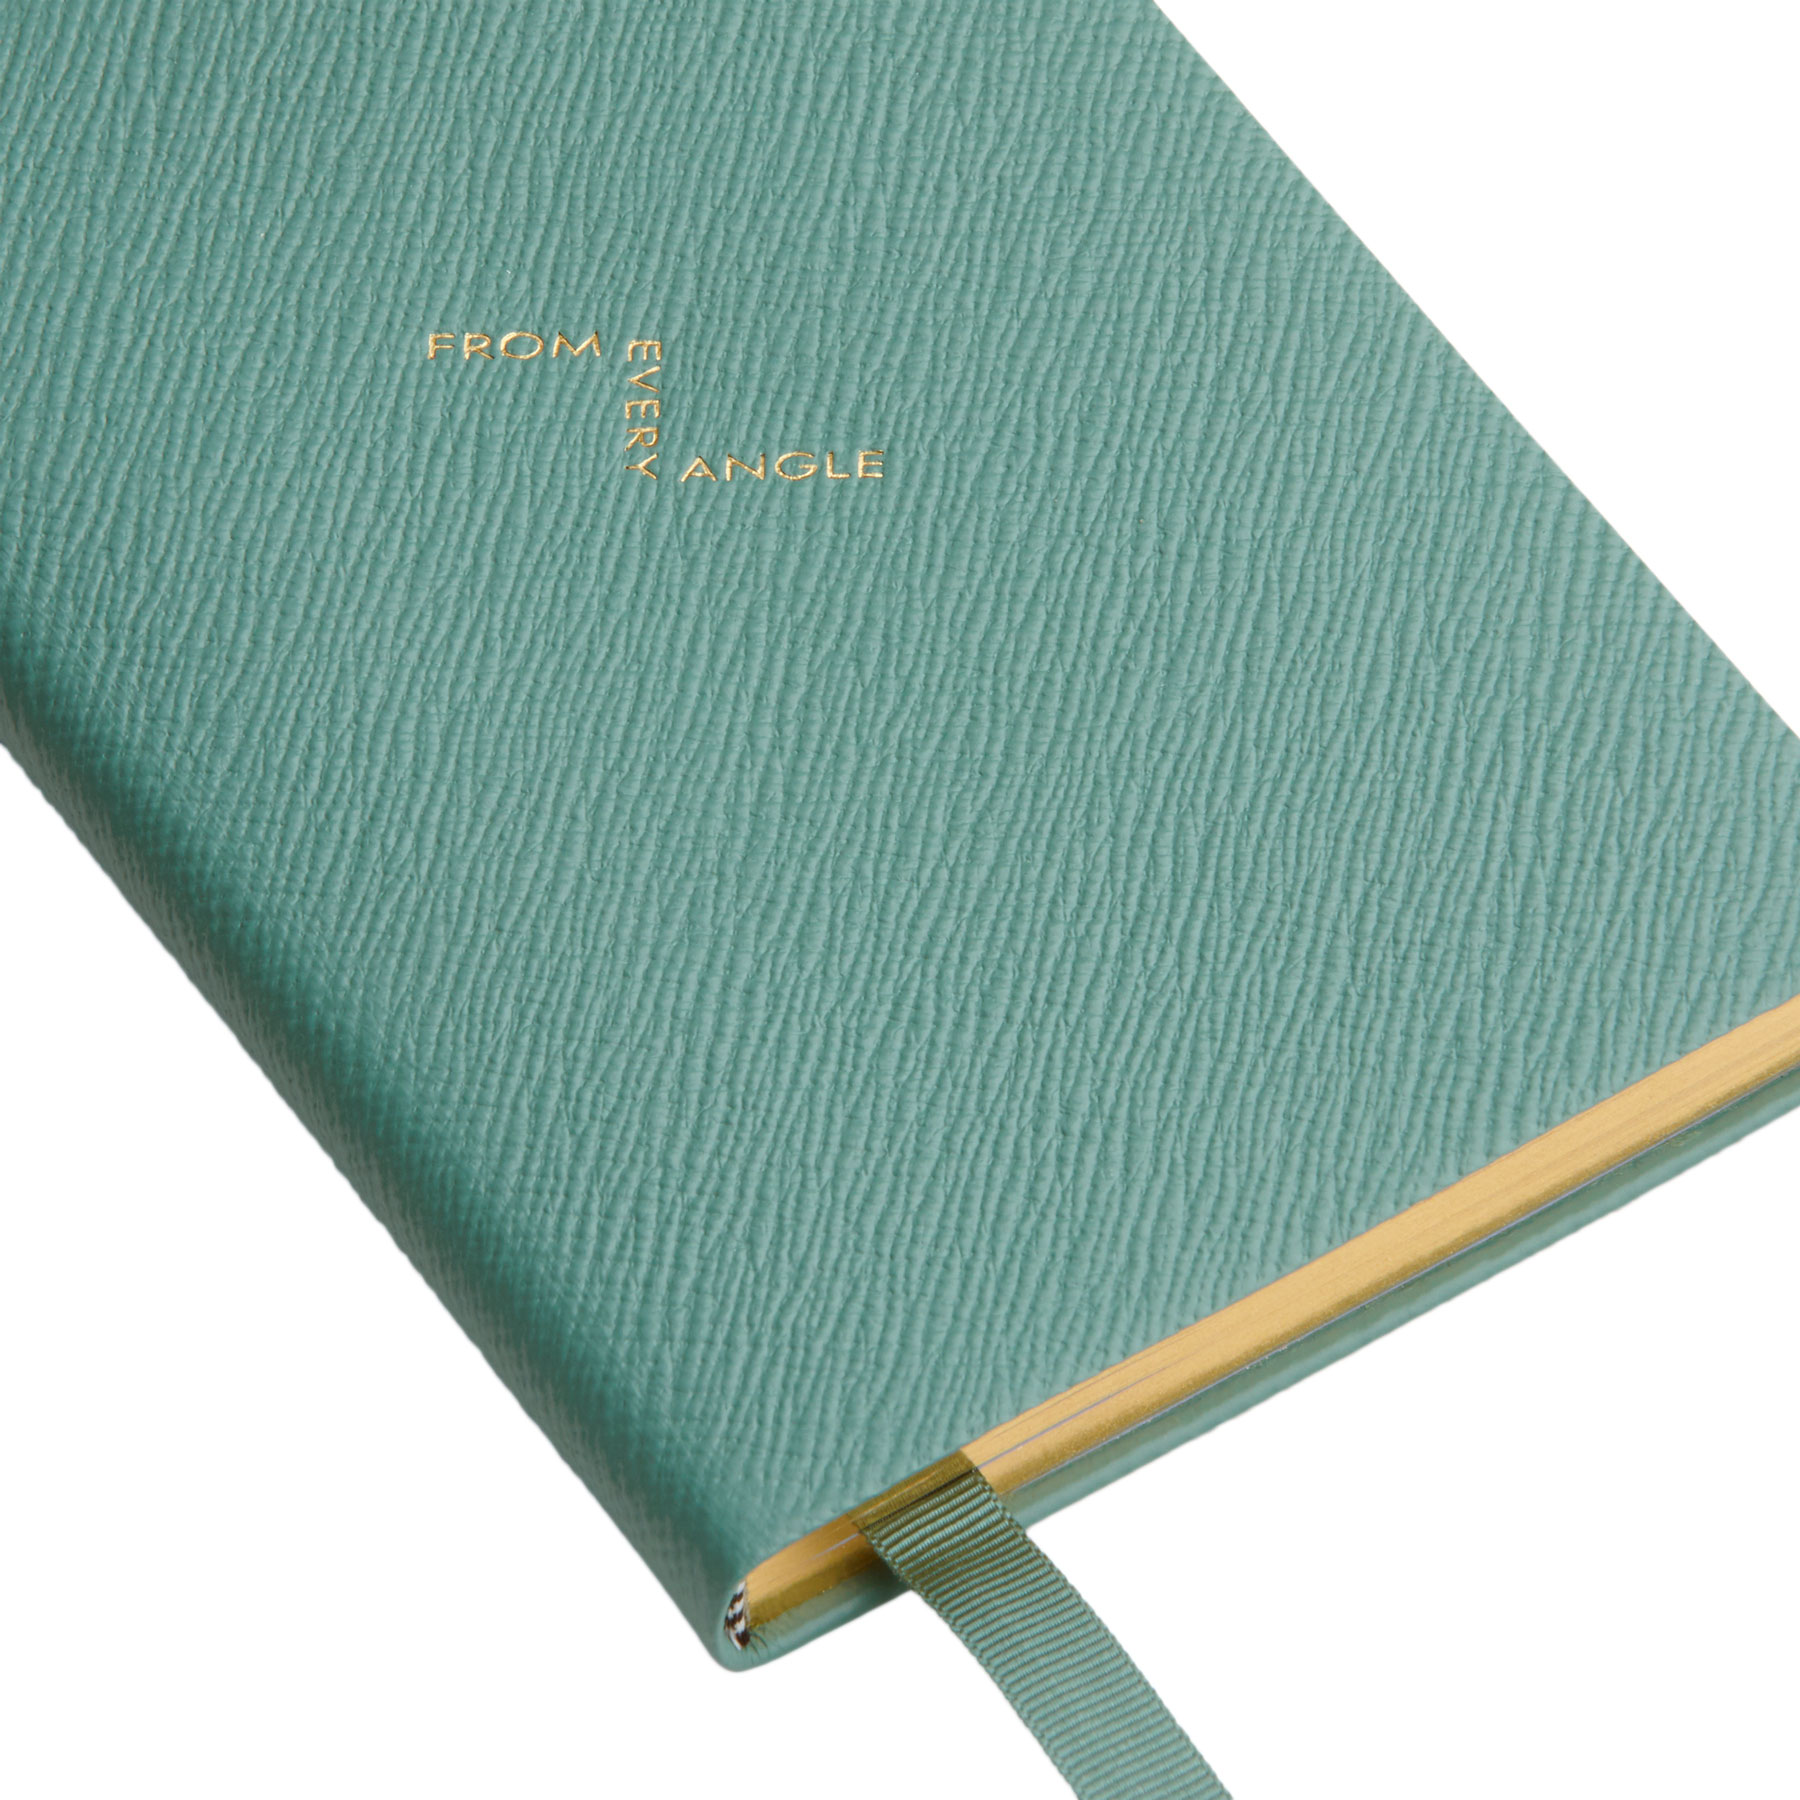 Best gifts, gift ideas for women - Smythson From Every Angle Chelsea Notebook